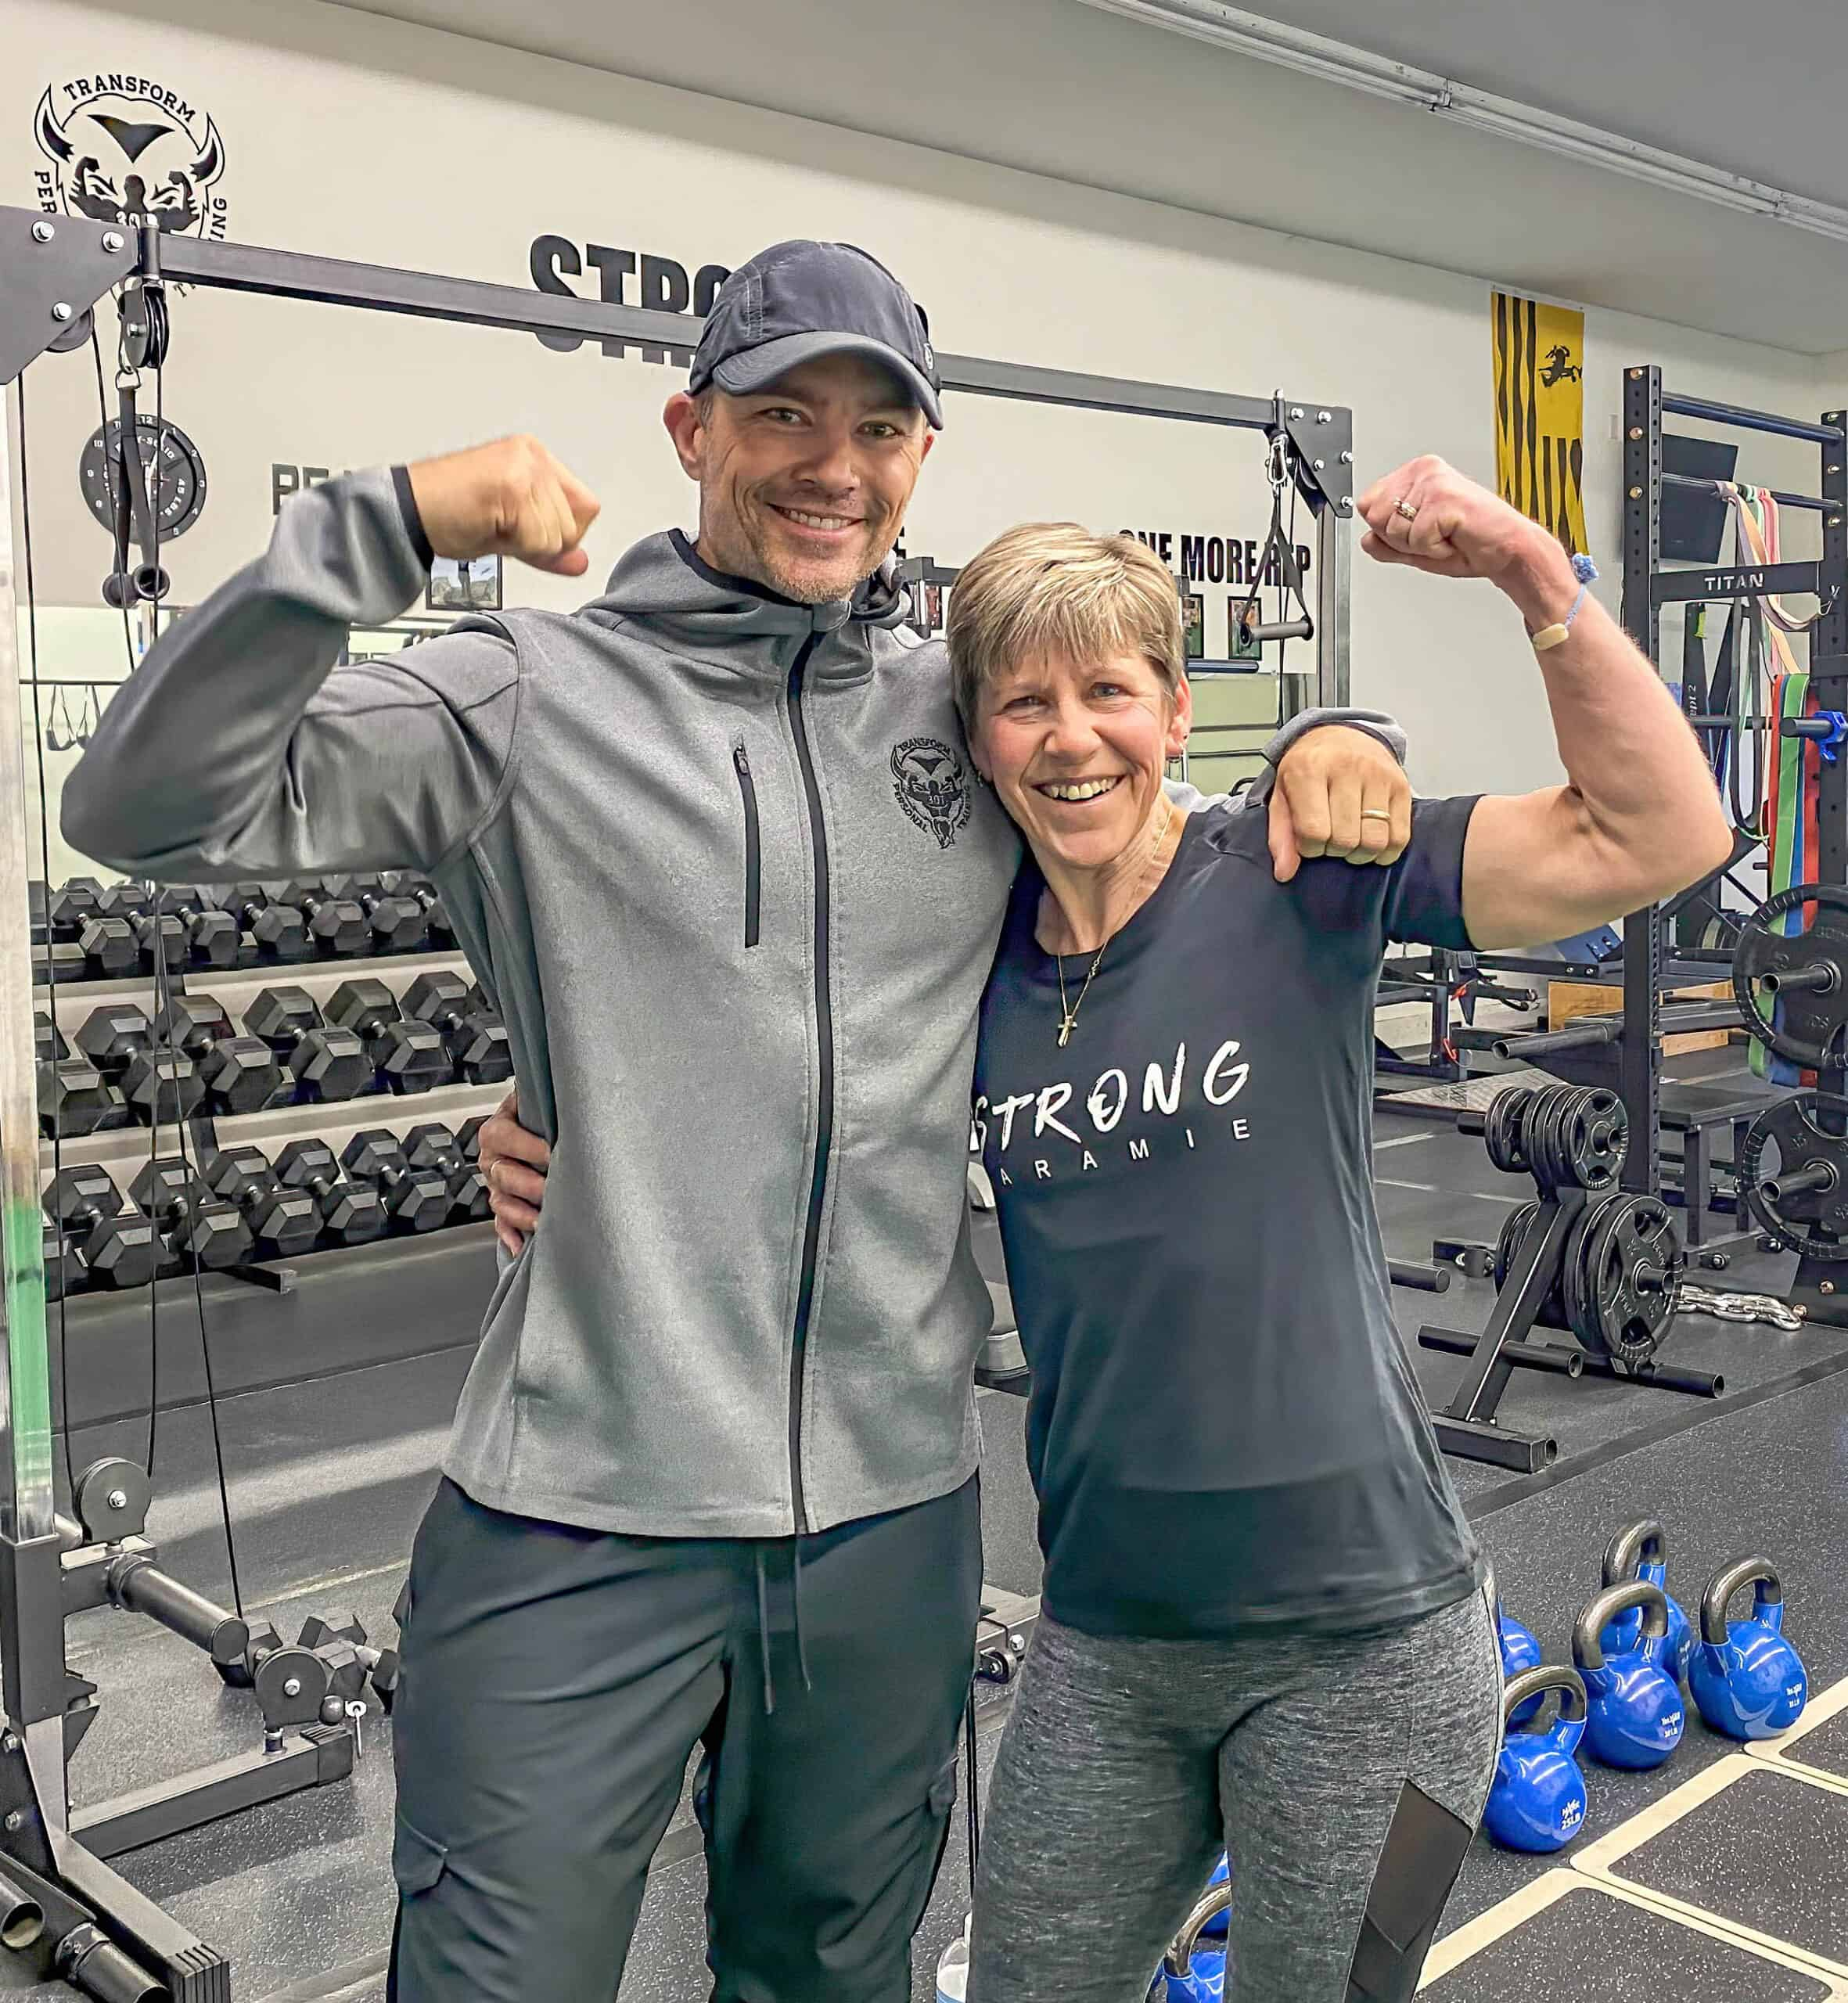 Nutrition Coaching in Laramie at Transforming Strength